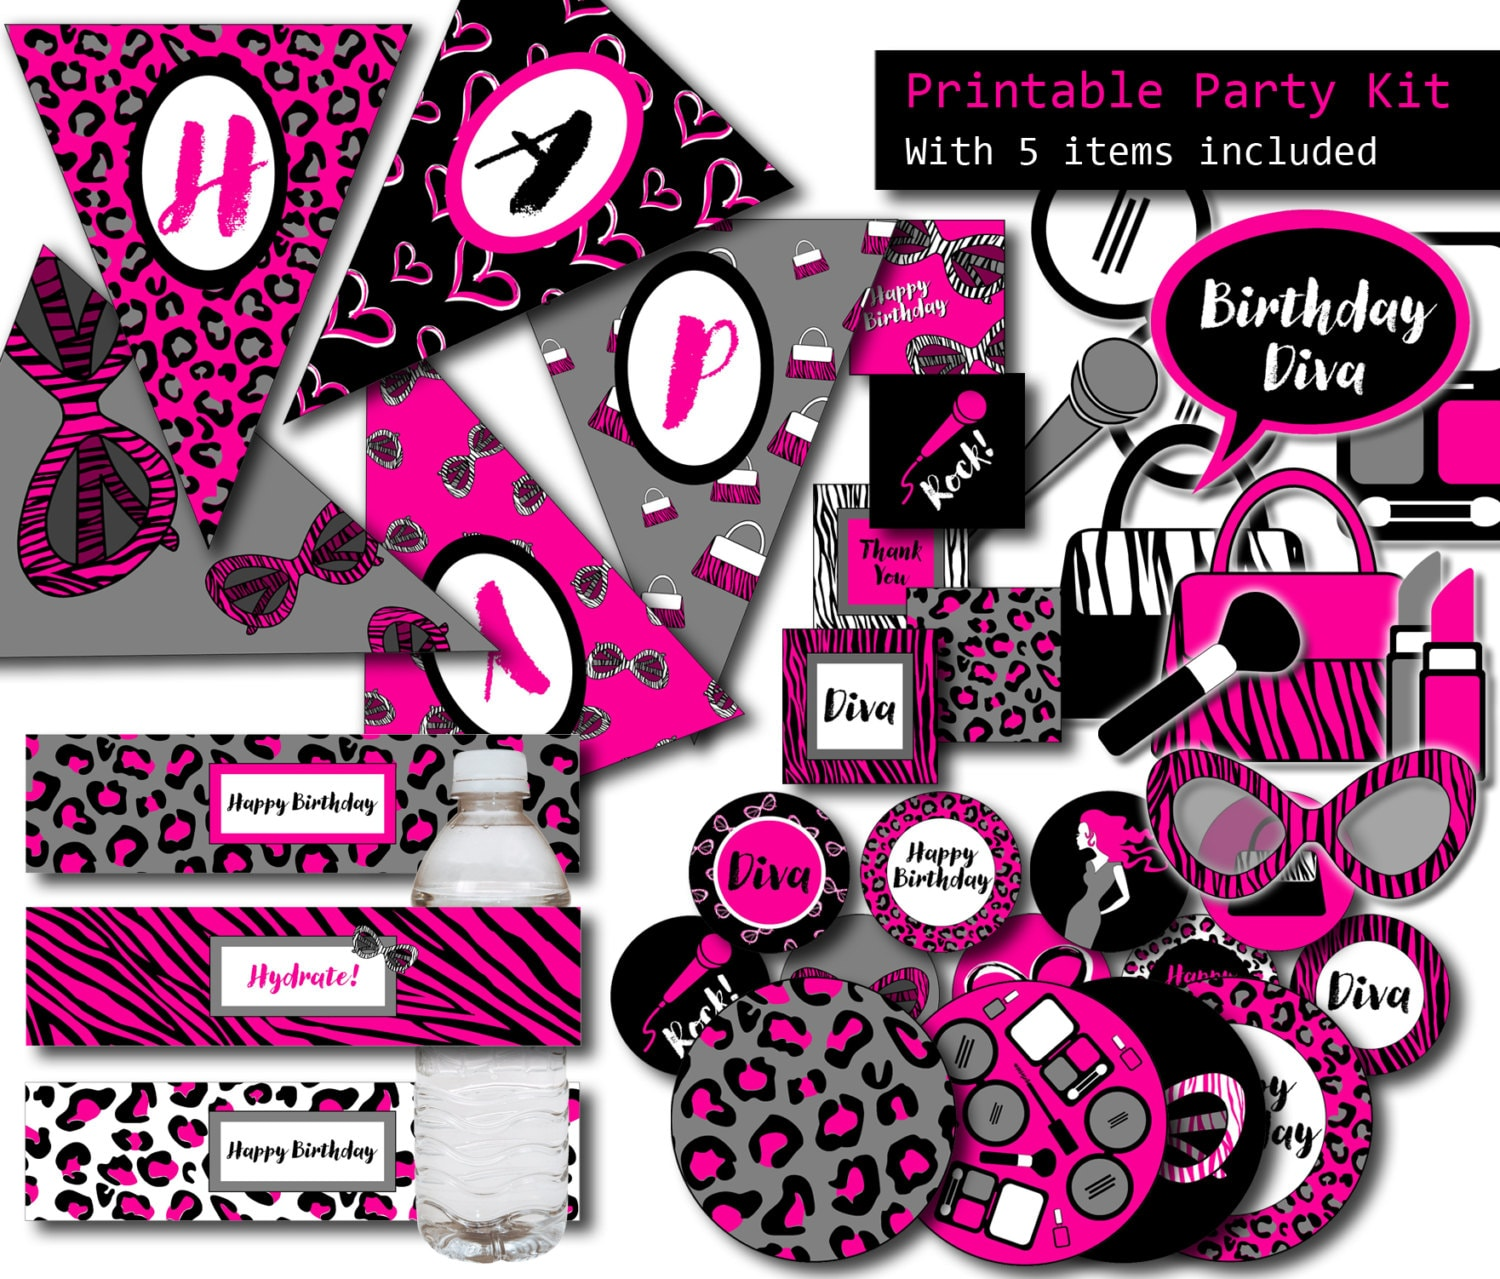 Diva Party 5 Items Printable Party Kit Girl Birthday